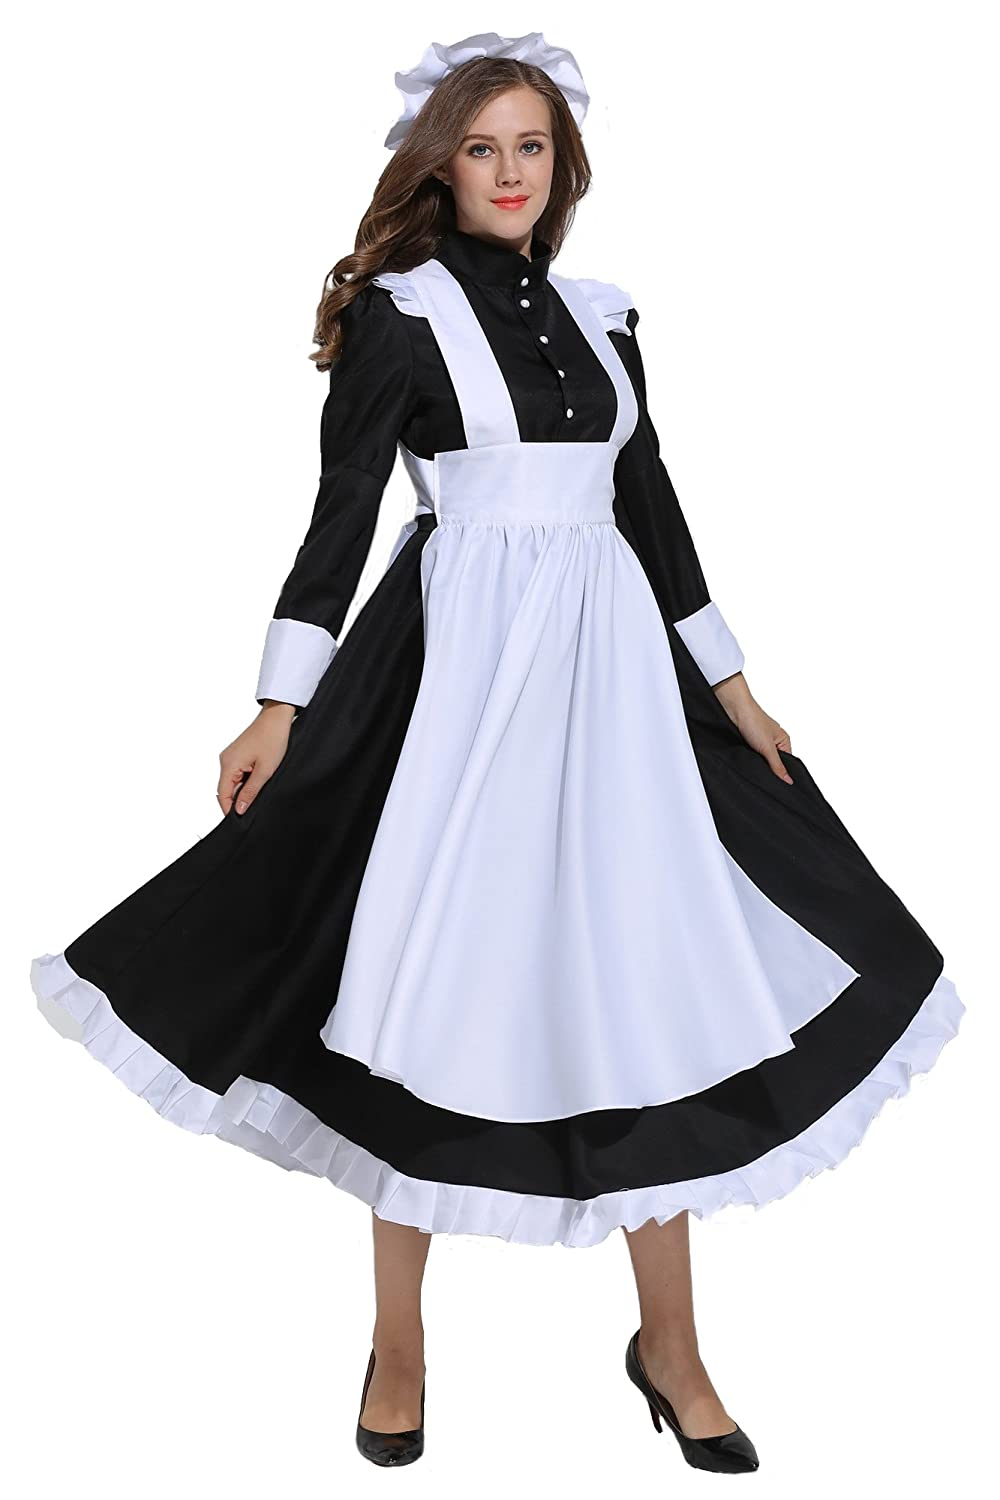 Vintage Style Children's Clothing: Girls, Boys, Baby, Toddler KOGOGO Victorian Maid Costume Colonial Women Dress with Apron $42.99 AT vintagedancer.com